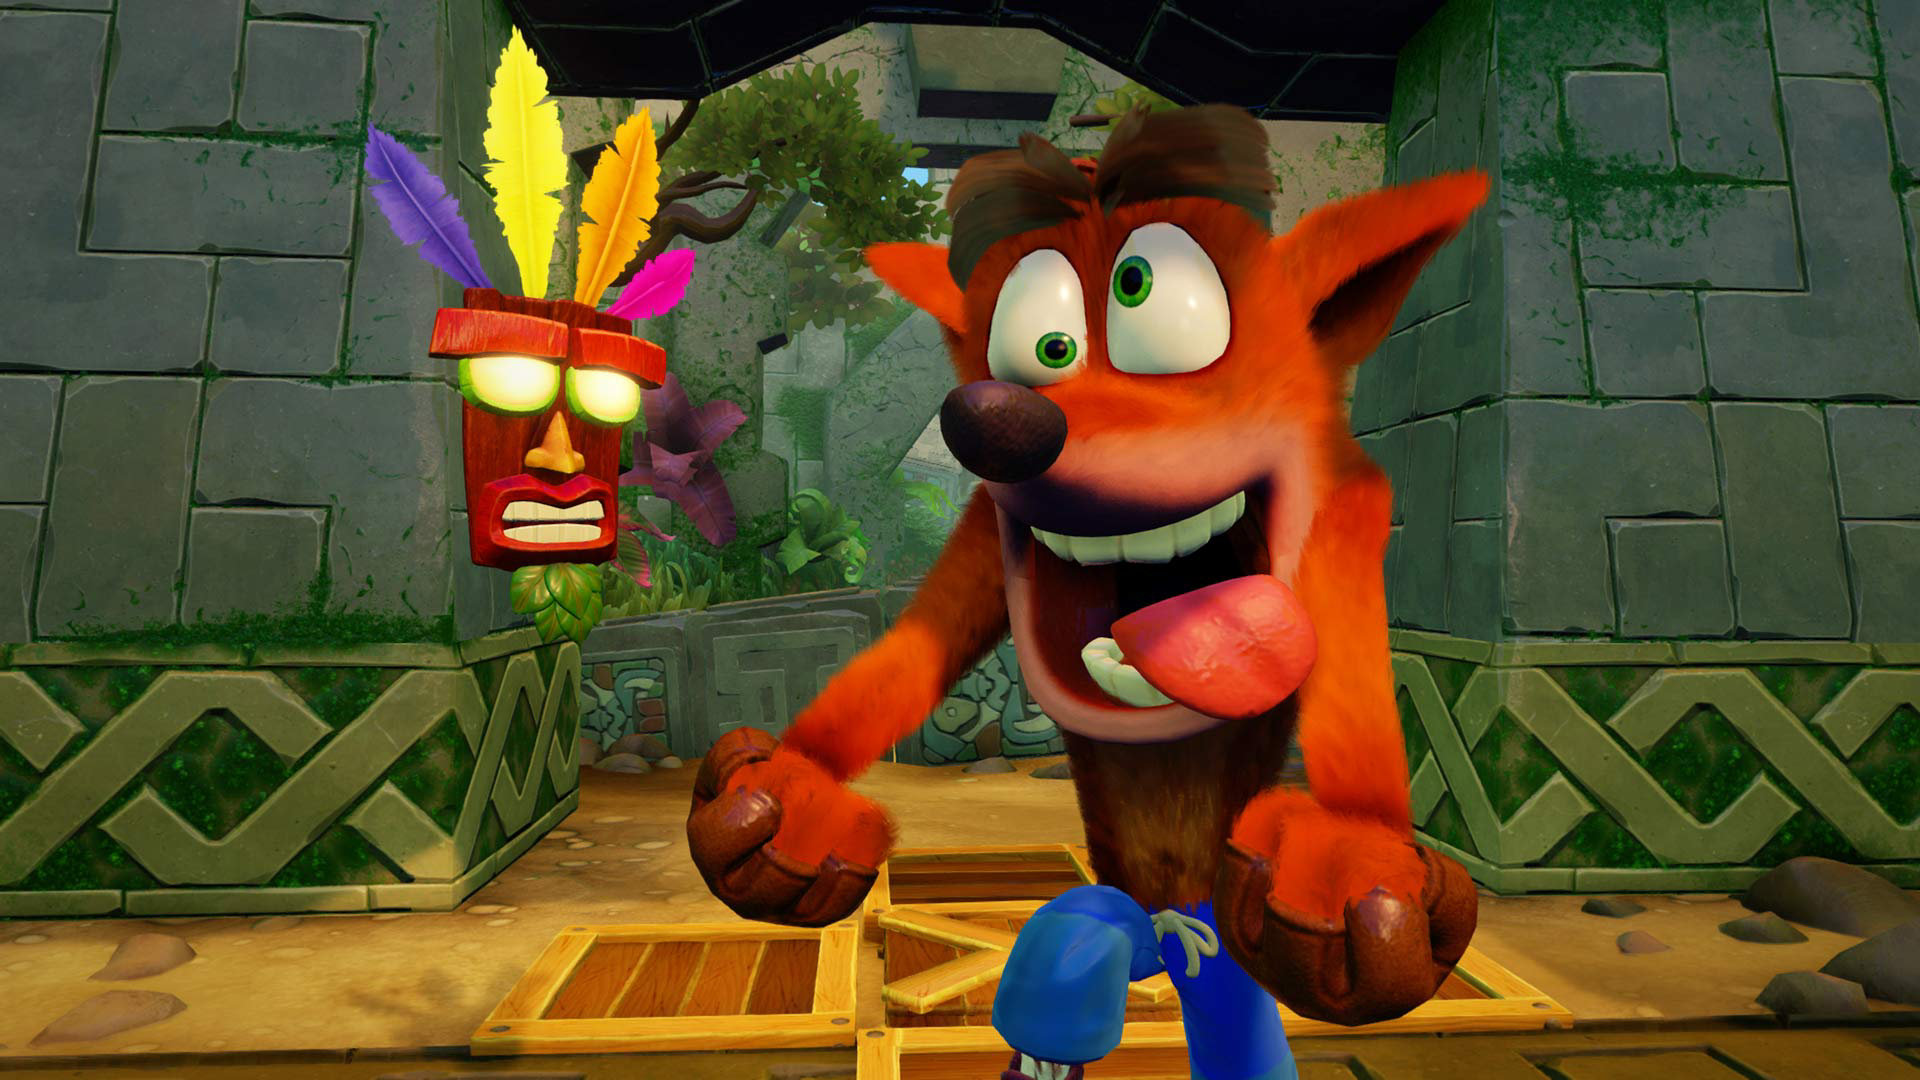 crash-bandicoot-n-sane-trilogy-screen-04-us-03dec16